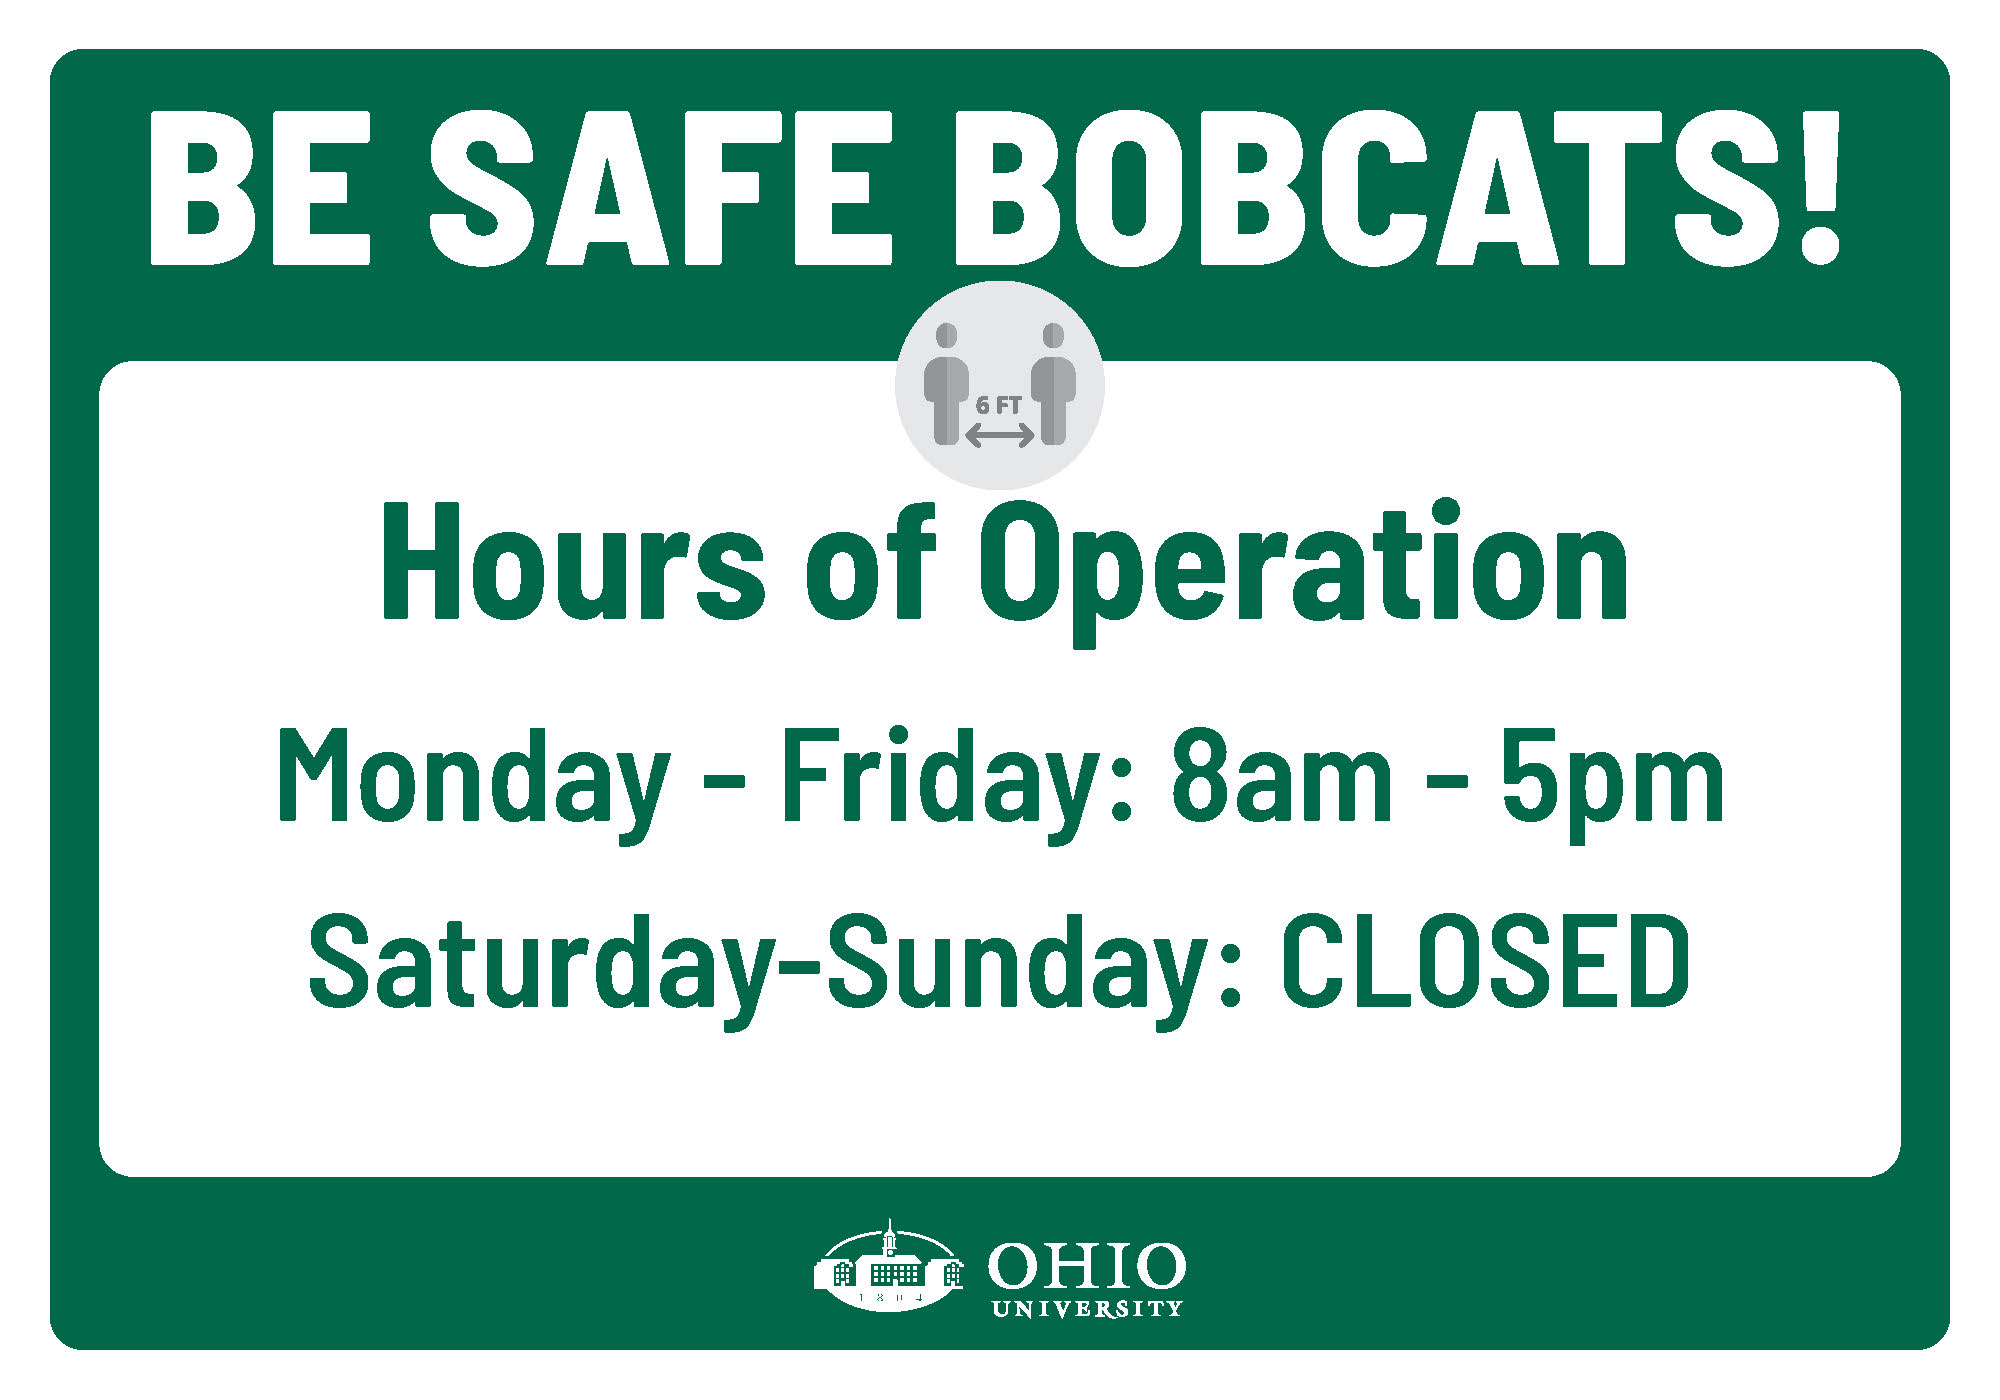 Sign that says: Be safe Bobcats! Hours of Operation